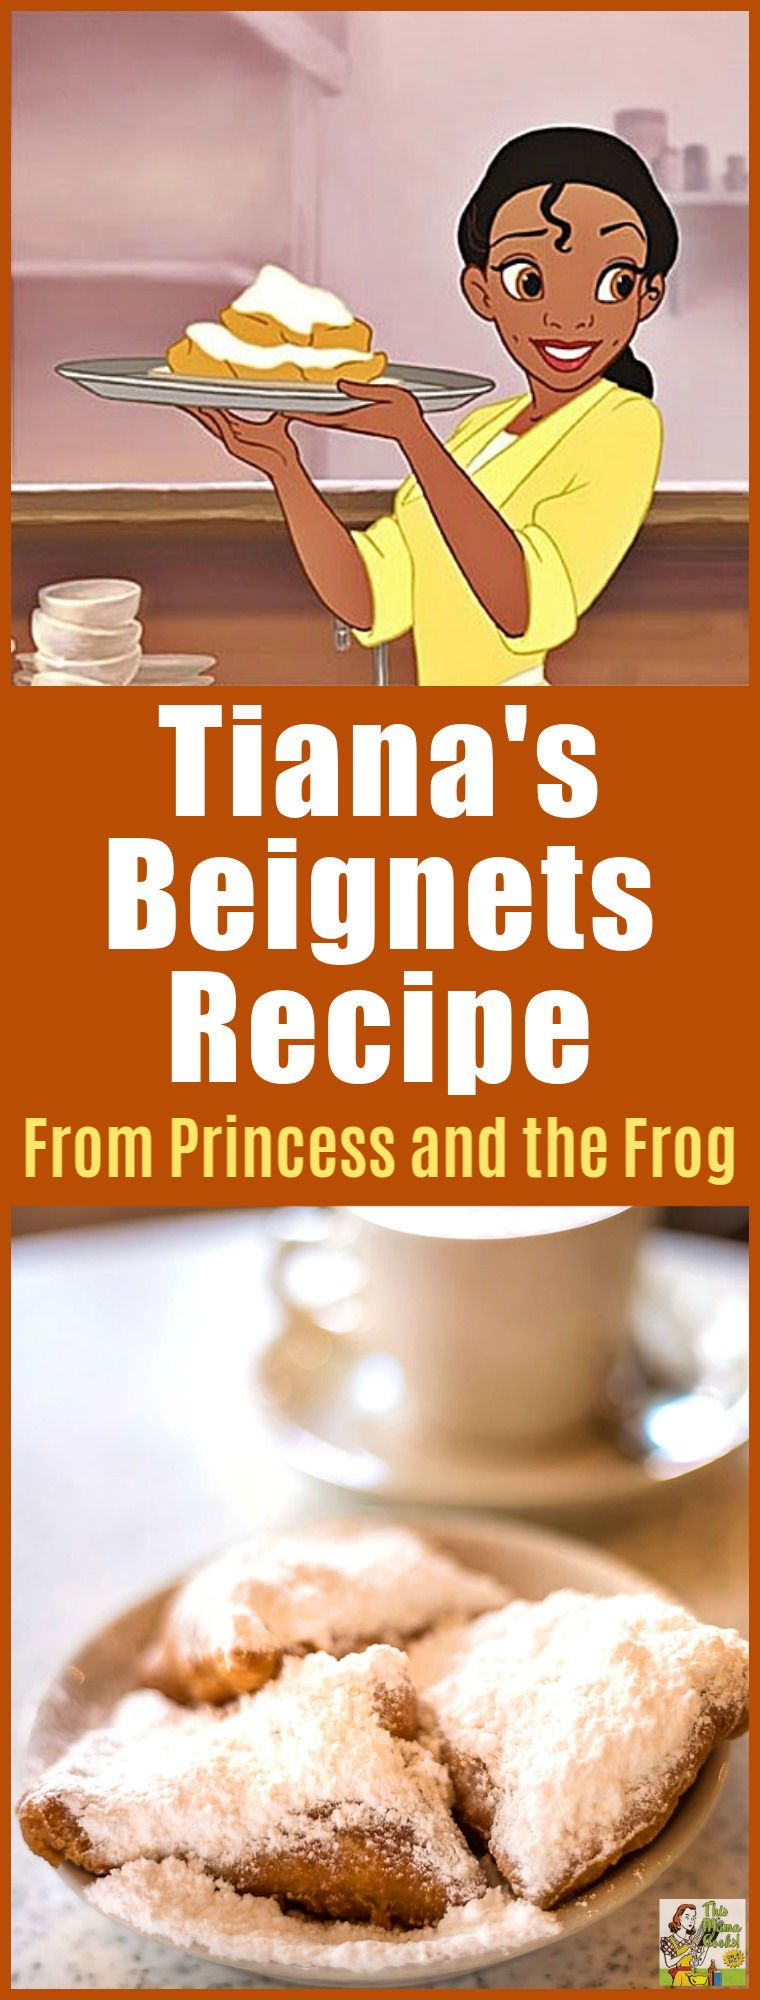 Want to make a New Orleans style beignet recipe for Mardi Gras brunch or breakfast? Try Tiana\'s Famous Beignets recipe from the Princess and the Frog movie and cookbook! #disneyprincess #disney #mardigras #mardigrasparty #baking #bakingrecipes #breakfast #desserts #kids #kidfriendly #recipes #recipe